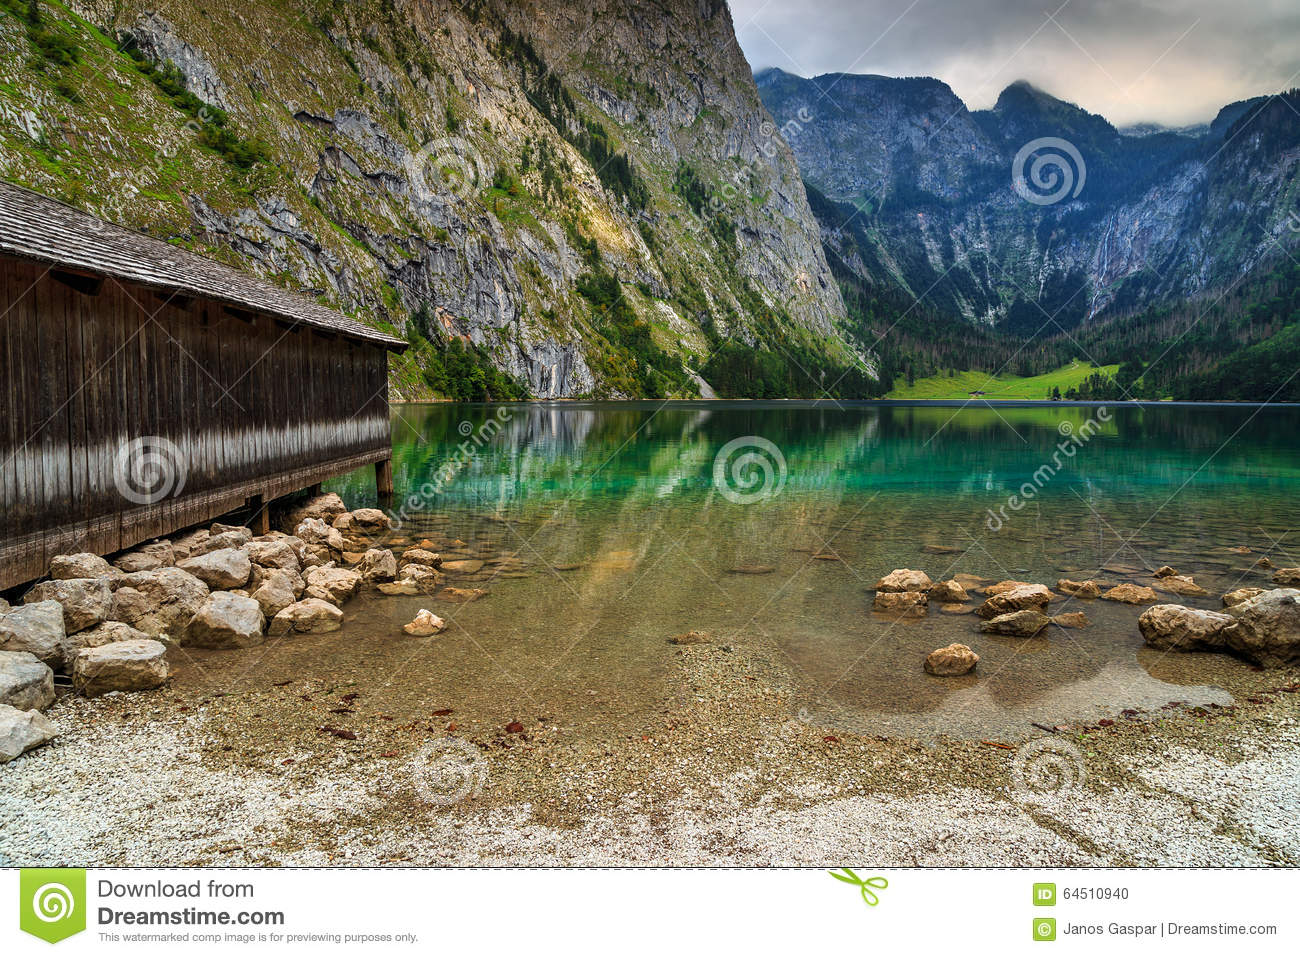 Boat Dock On Obersee Alpine Lake,Berchtesgaden,Bavaria,Germany.